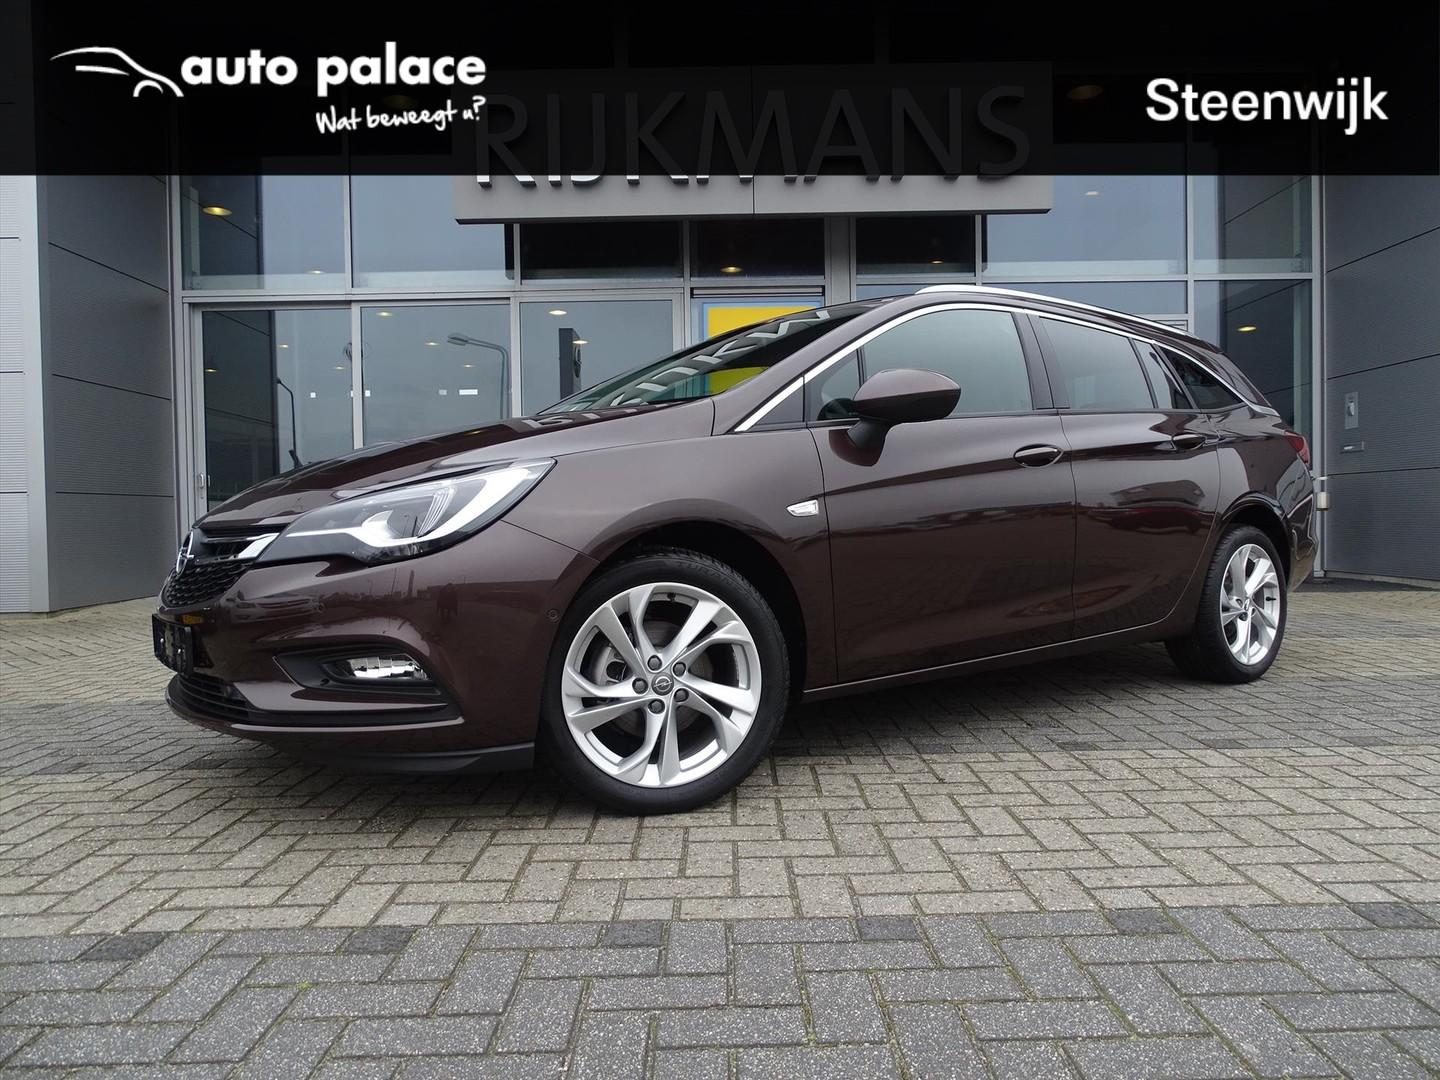 Opel Astra Sports tourer innovation 1.0 105 pk - intellilux - navi - 17""